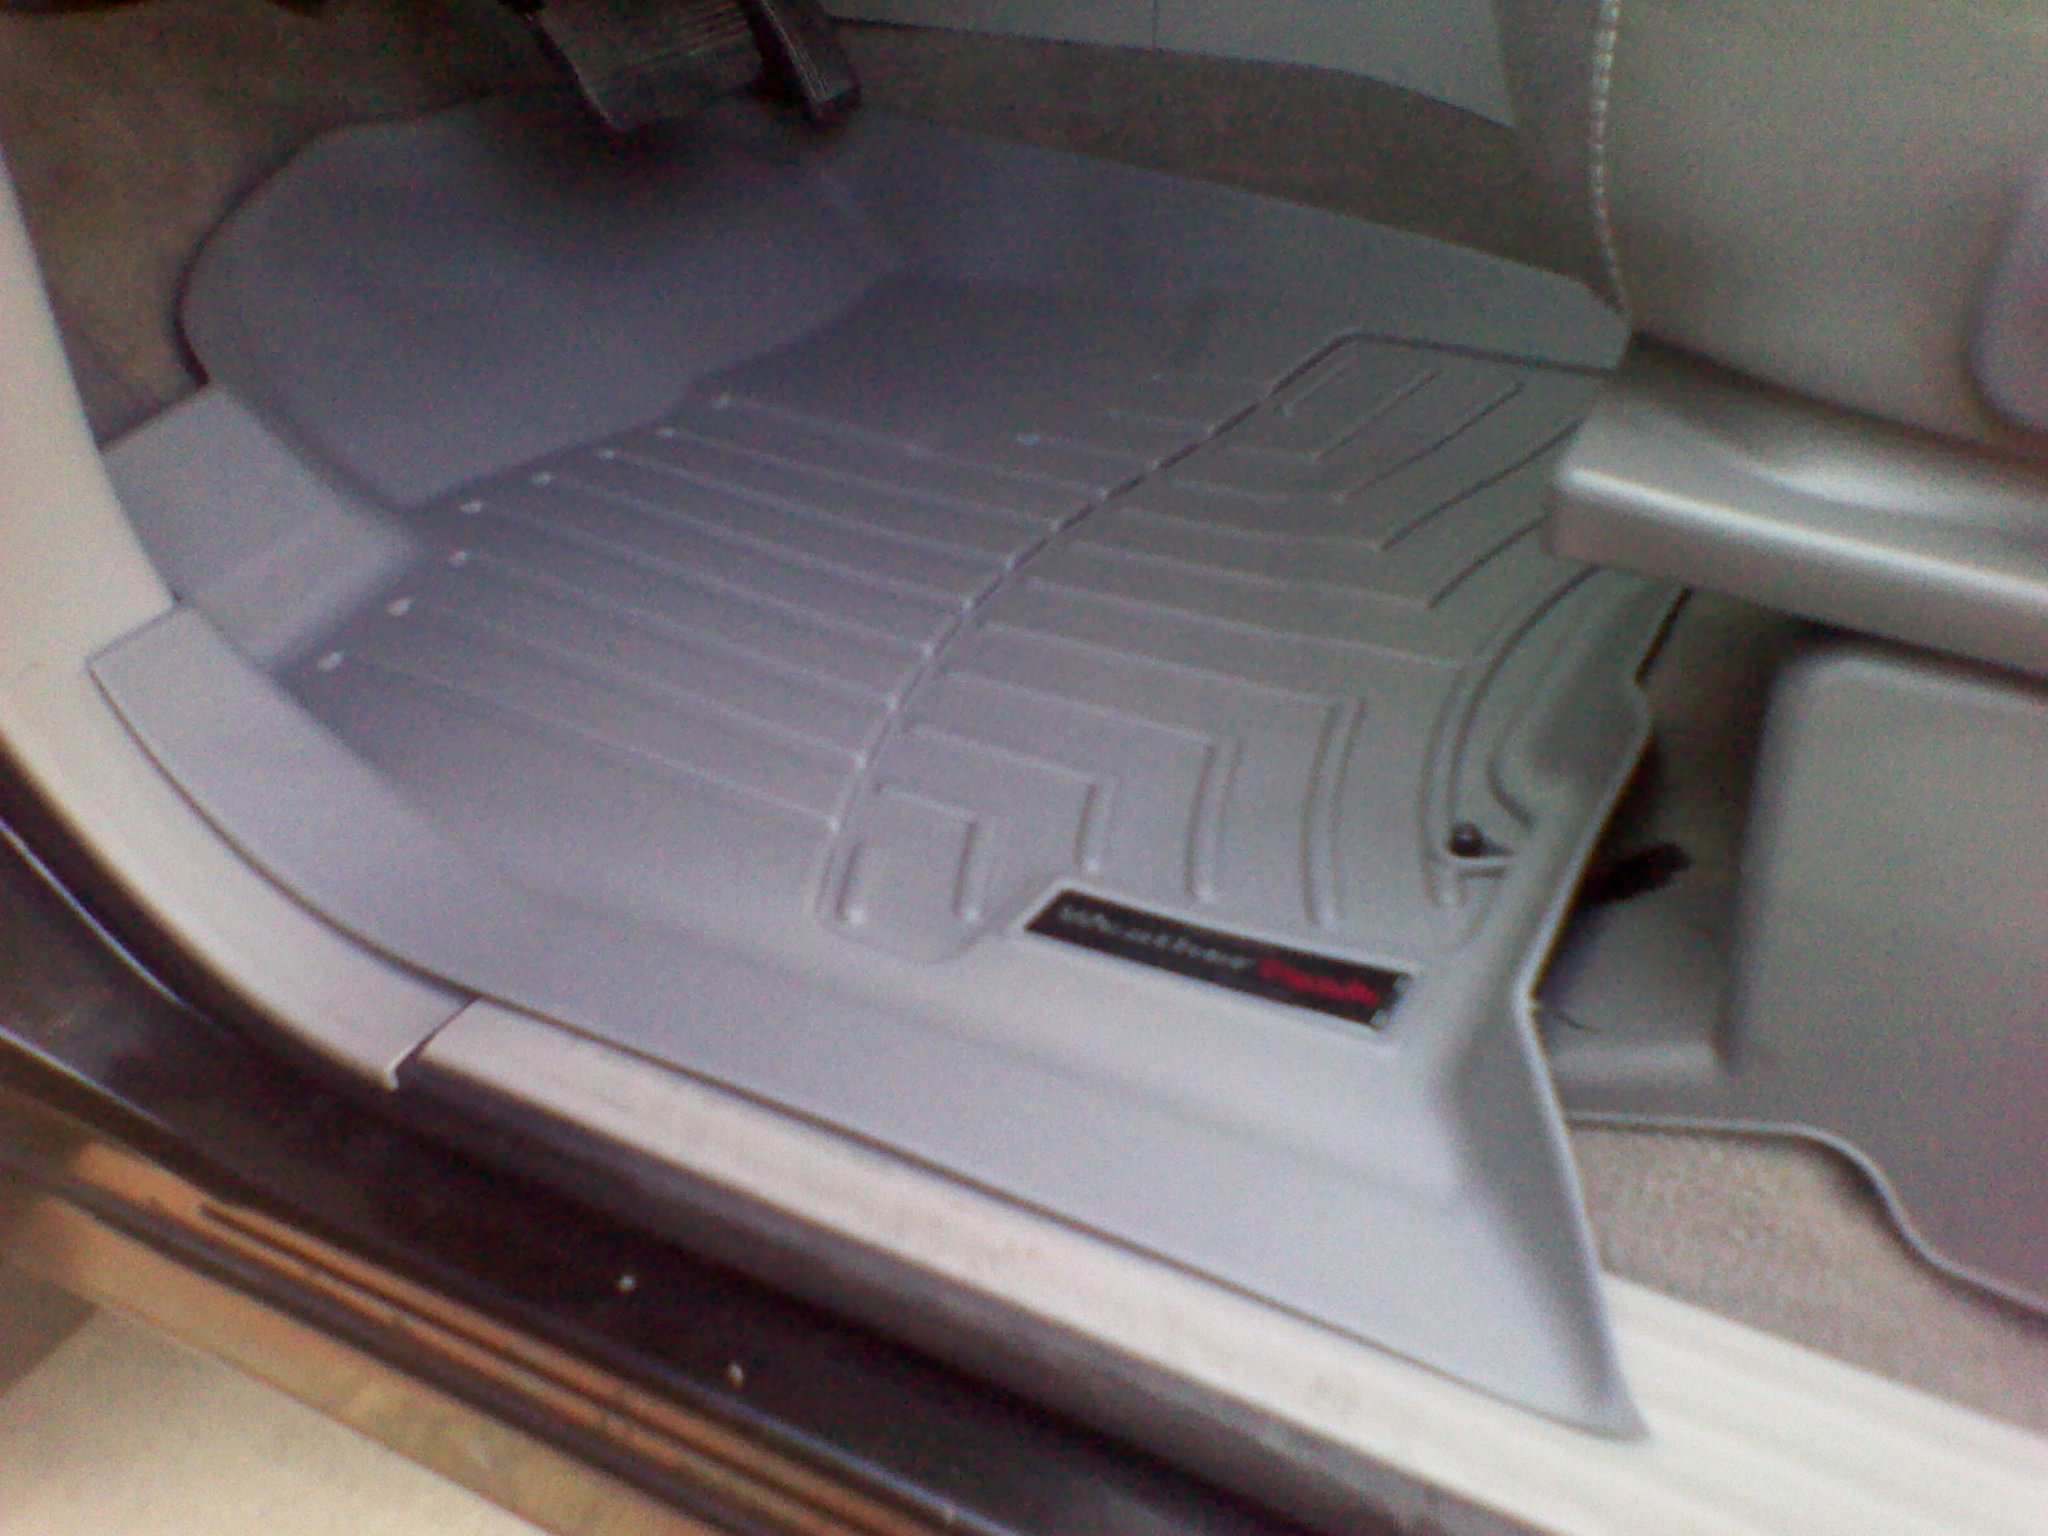 wonderfular design at car matscar rubberheap blue salelassic salecar rubber discount reviews wholesalecar miami for weathertech walmart floor wonderful custom image of floors size mats sale full